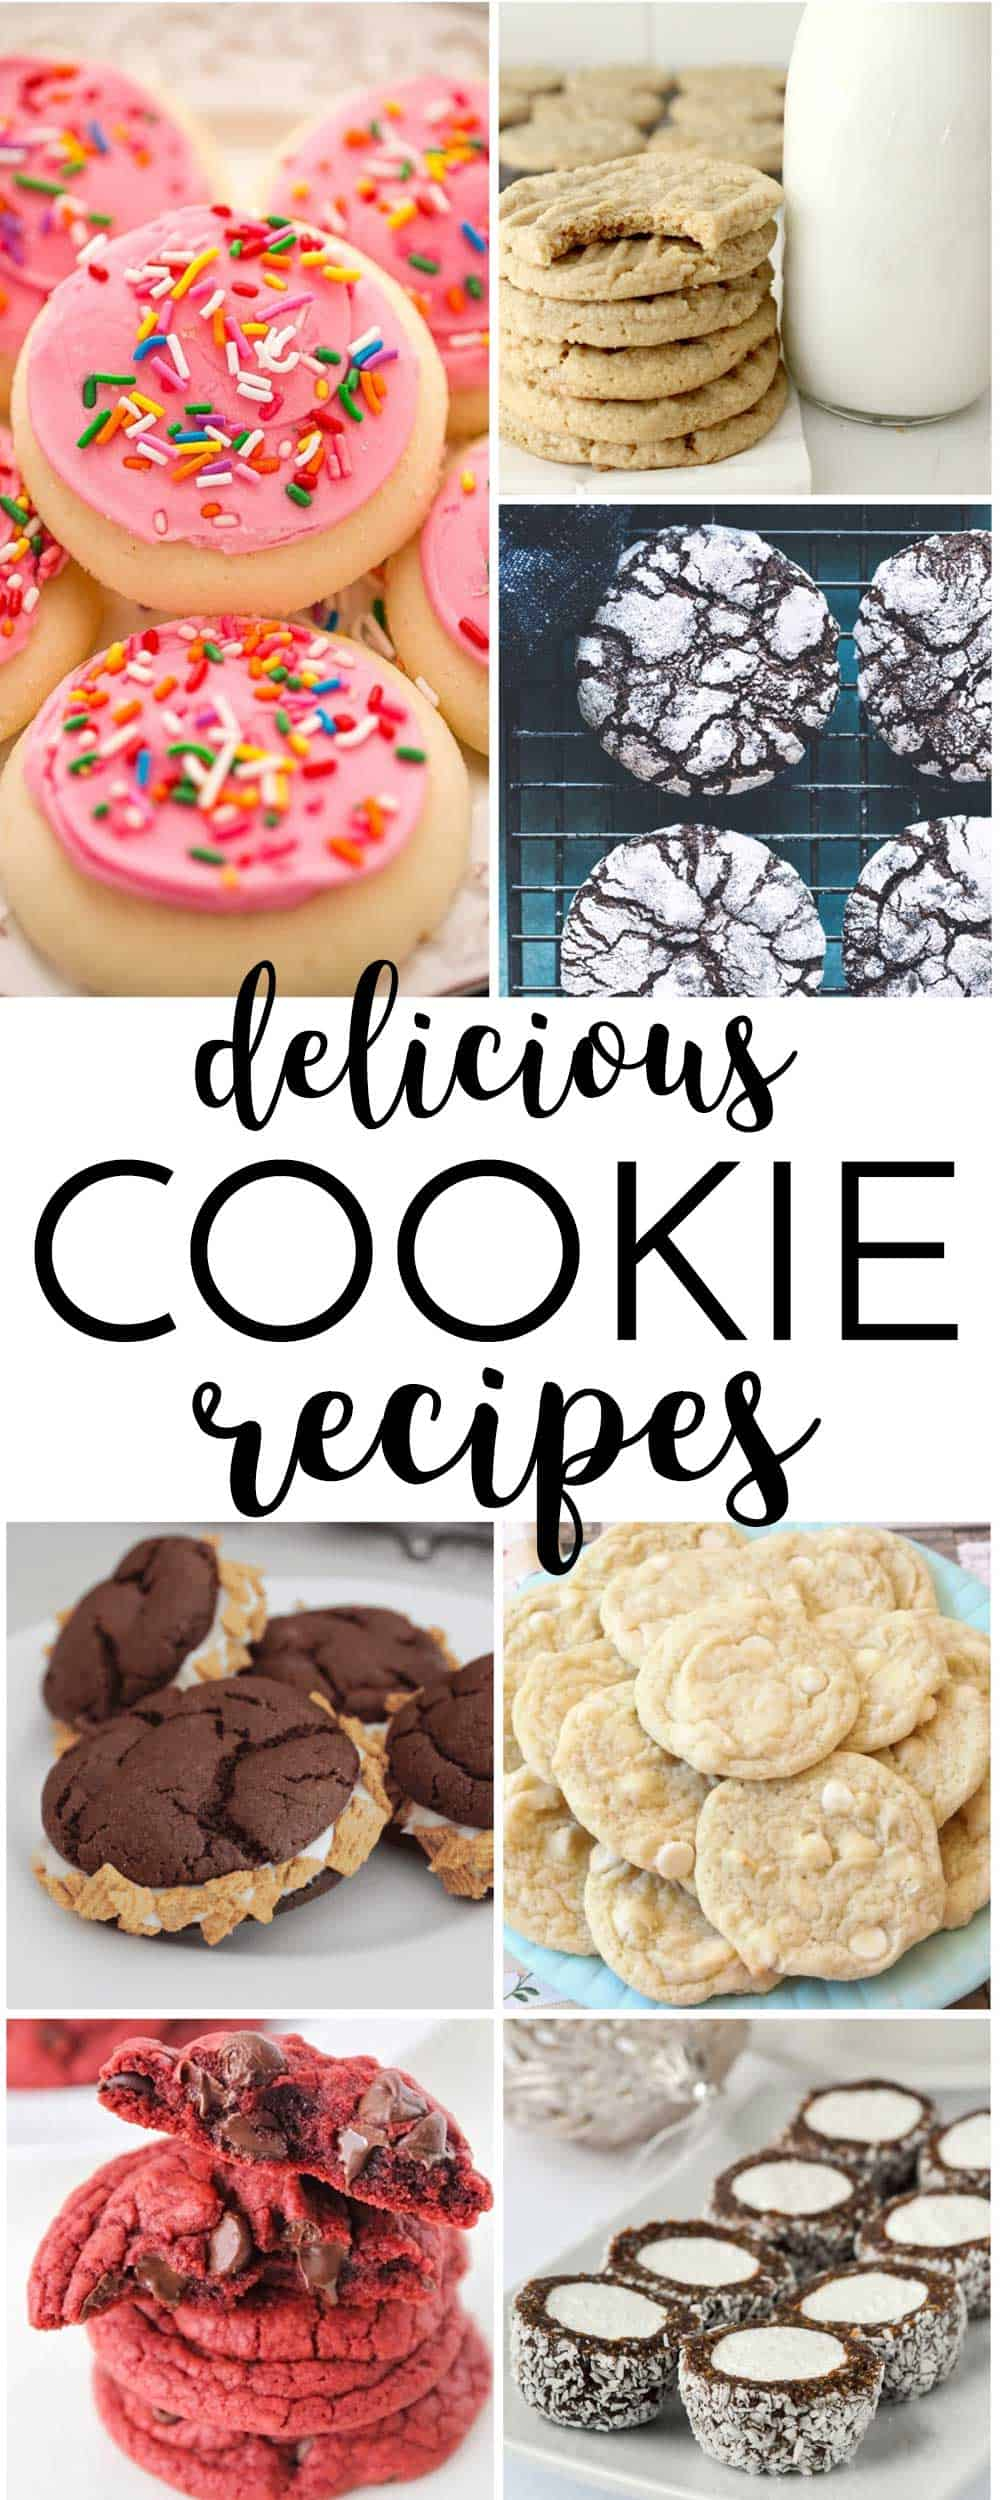 DELICIOUS cookies here! of all kinds! You can find classic cookies and unique, new cookie recipes to try!